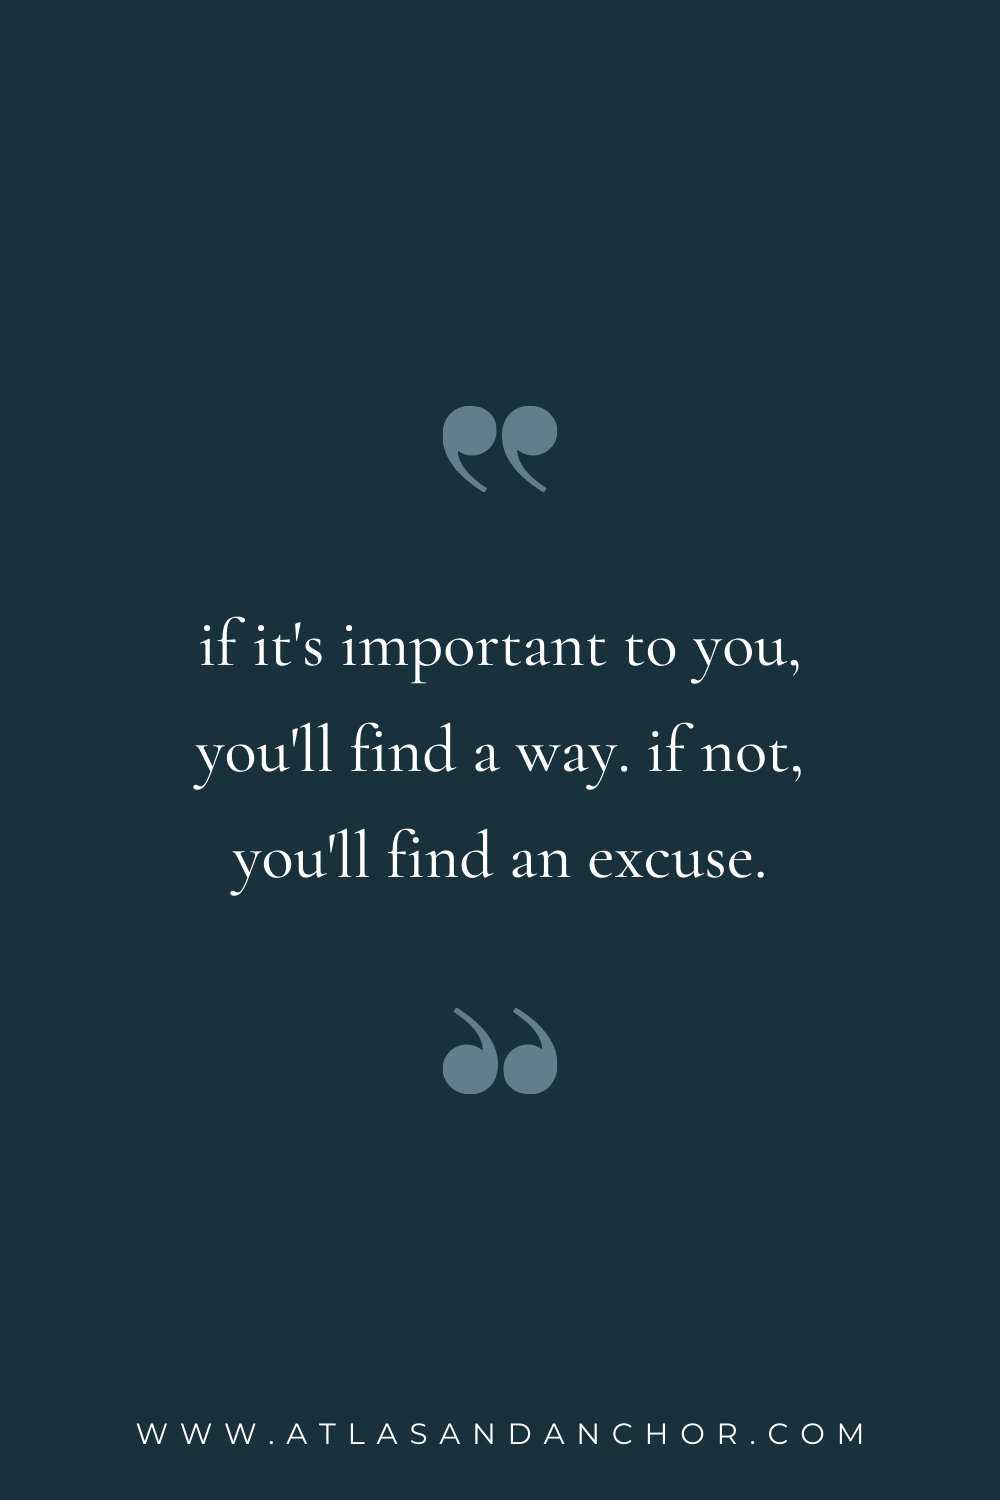 small business advice quote